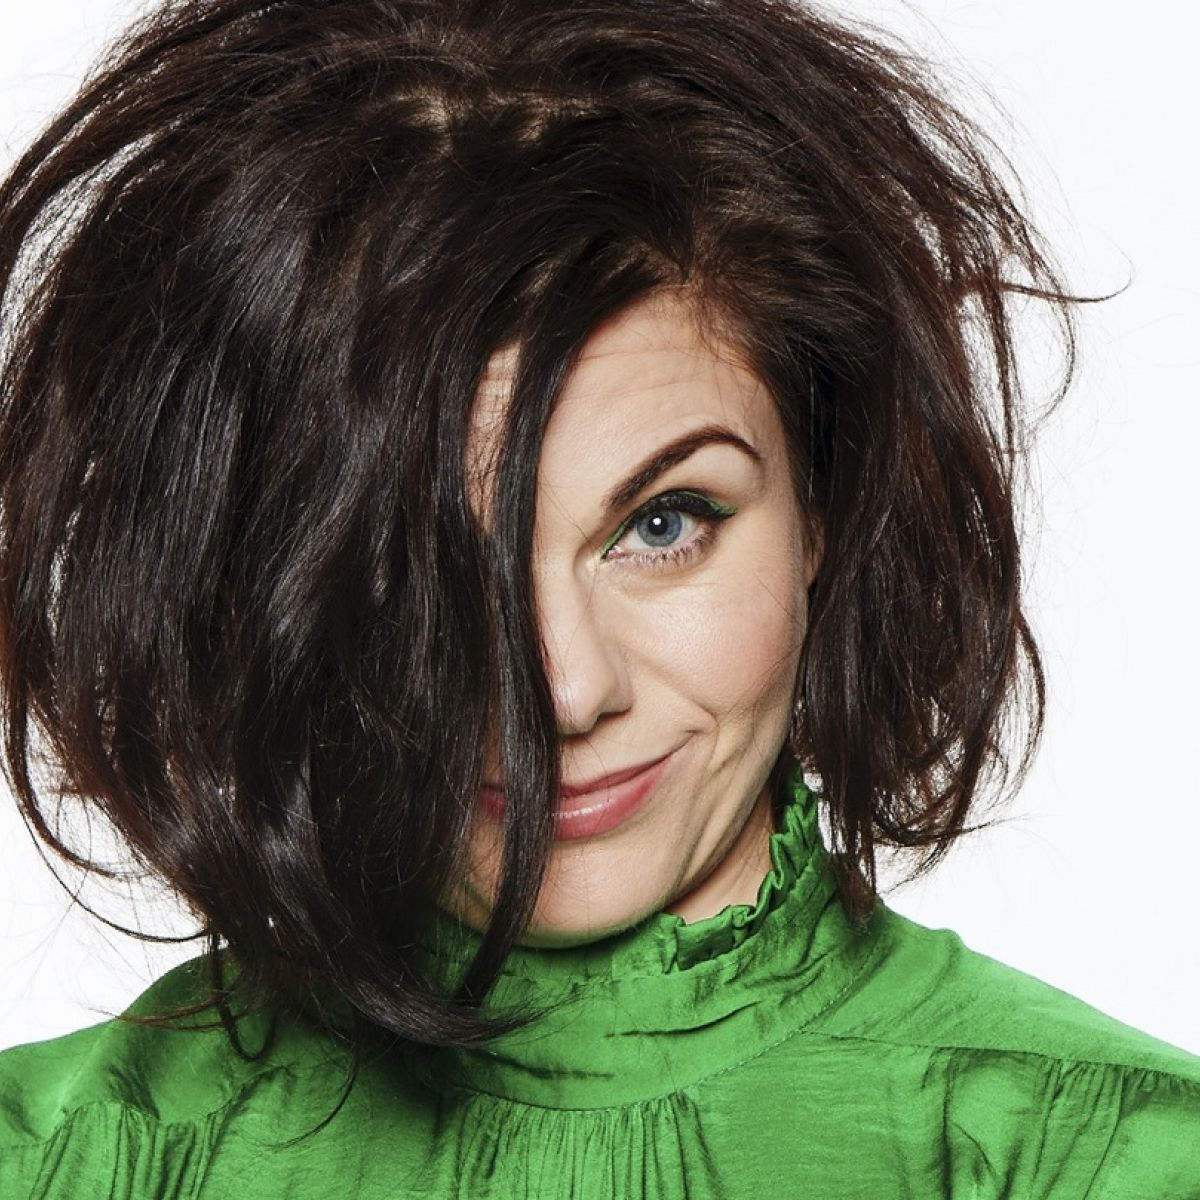 Caitlin Moran: 'There are so many more good men than bad'